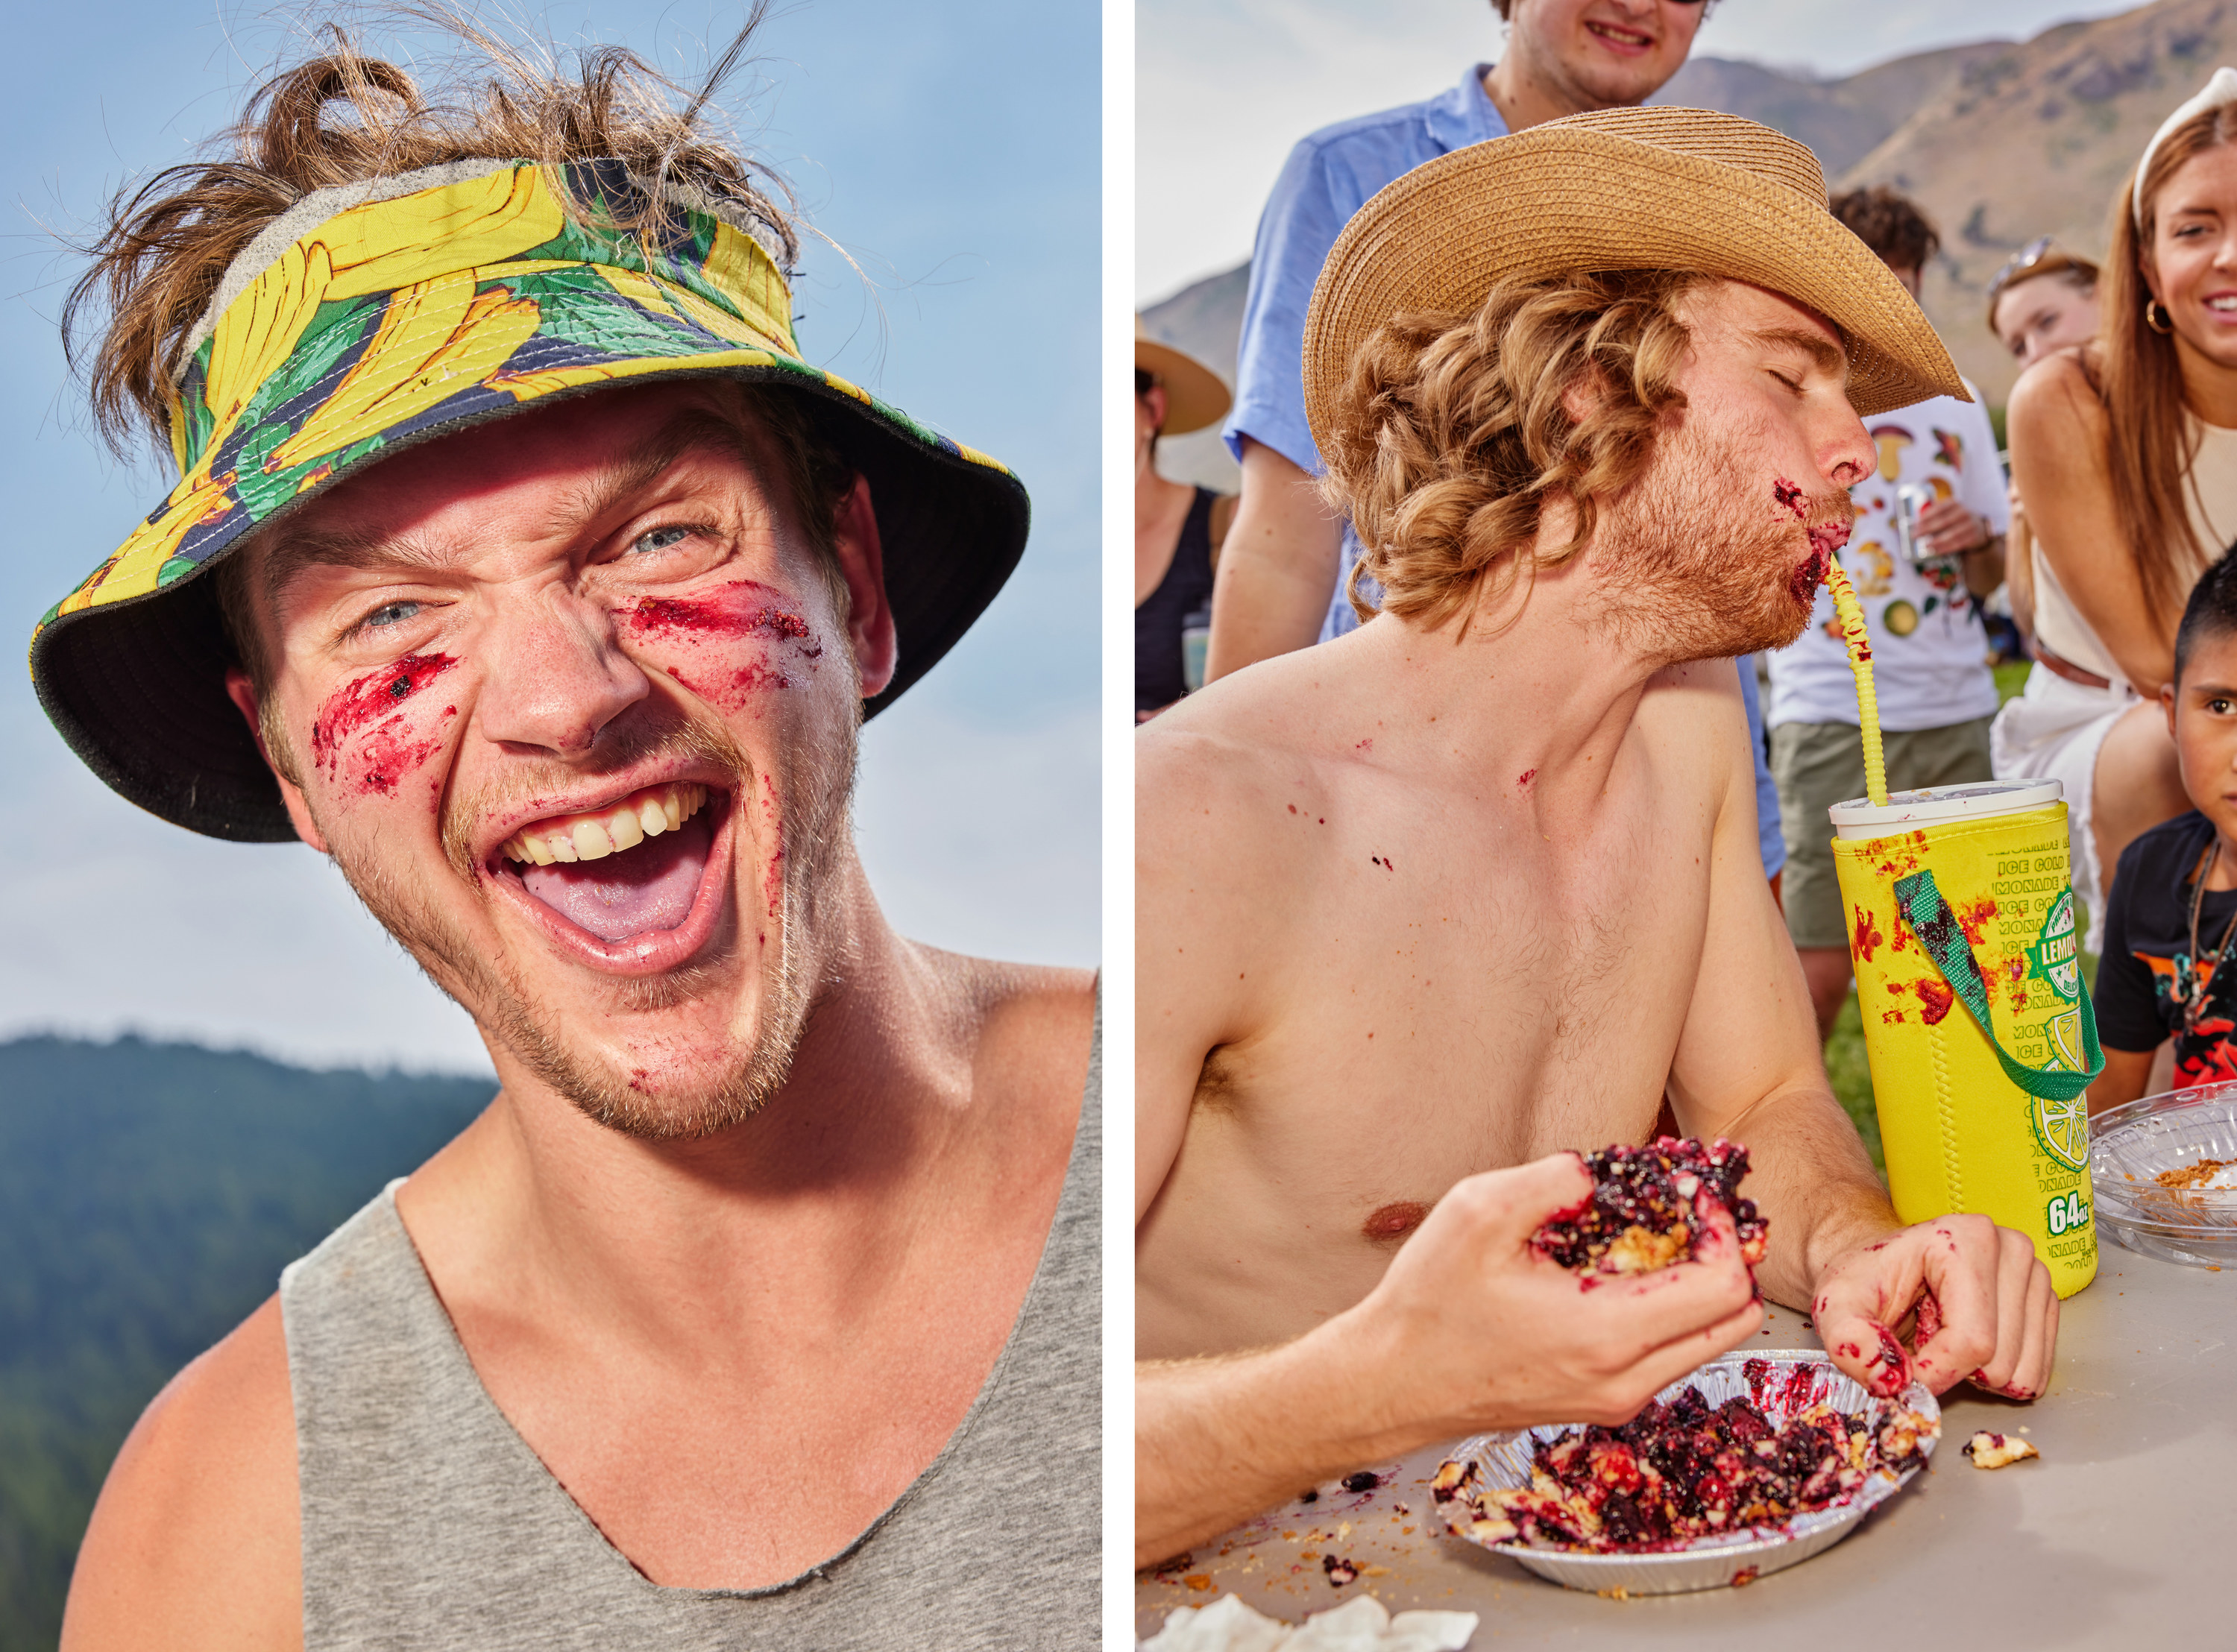 Left, a man with pie smeared over his face in an open-top bucket hat, right, a mad gulps water with a fistful of pie during the contest